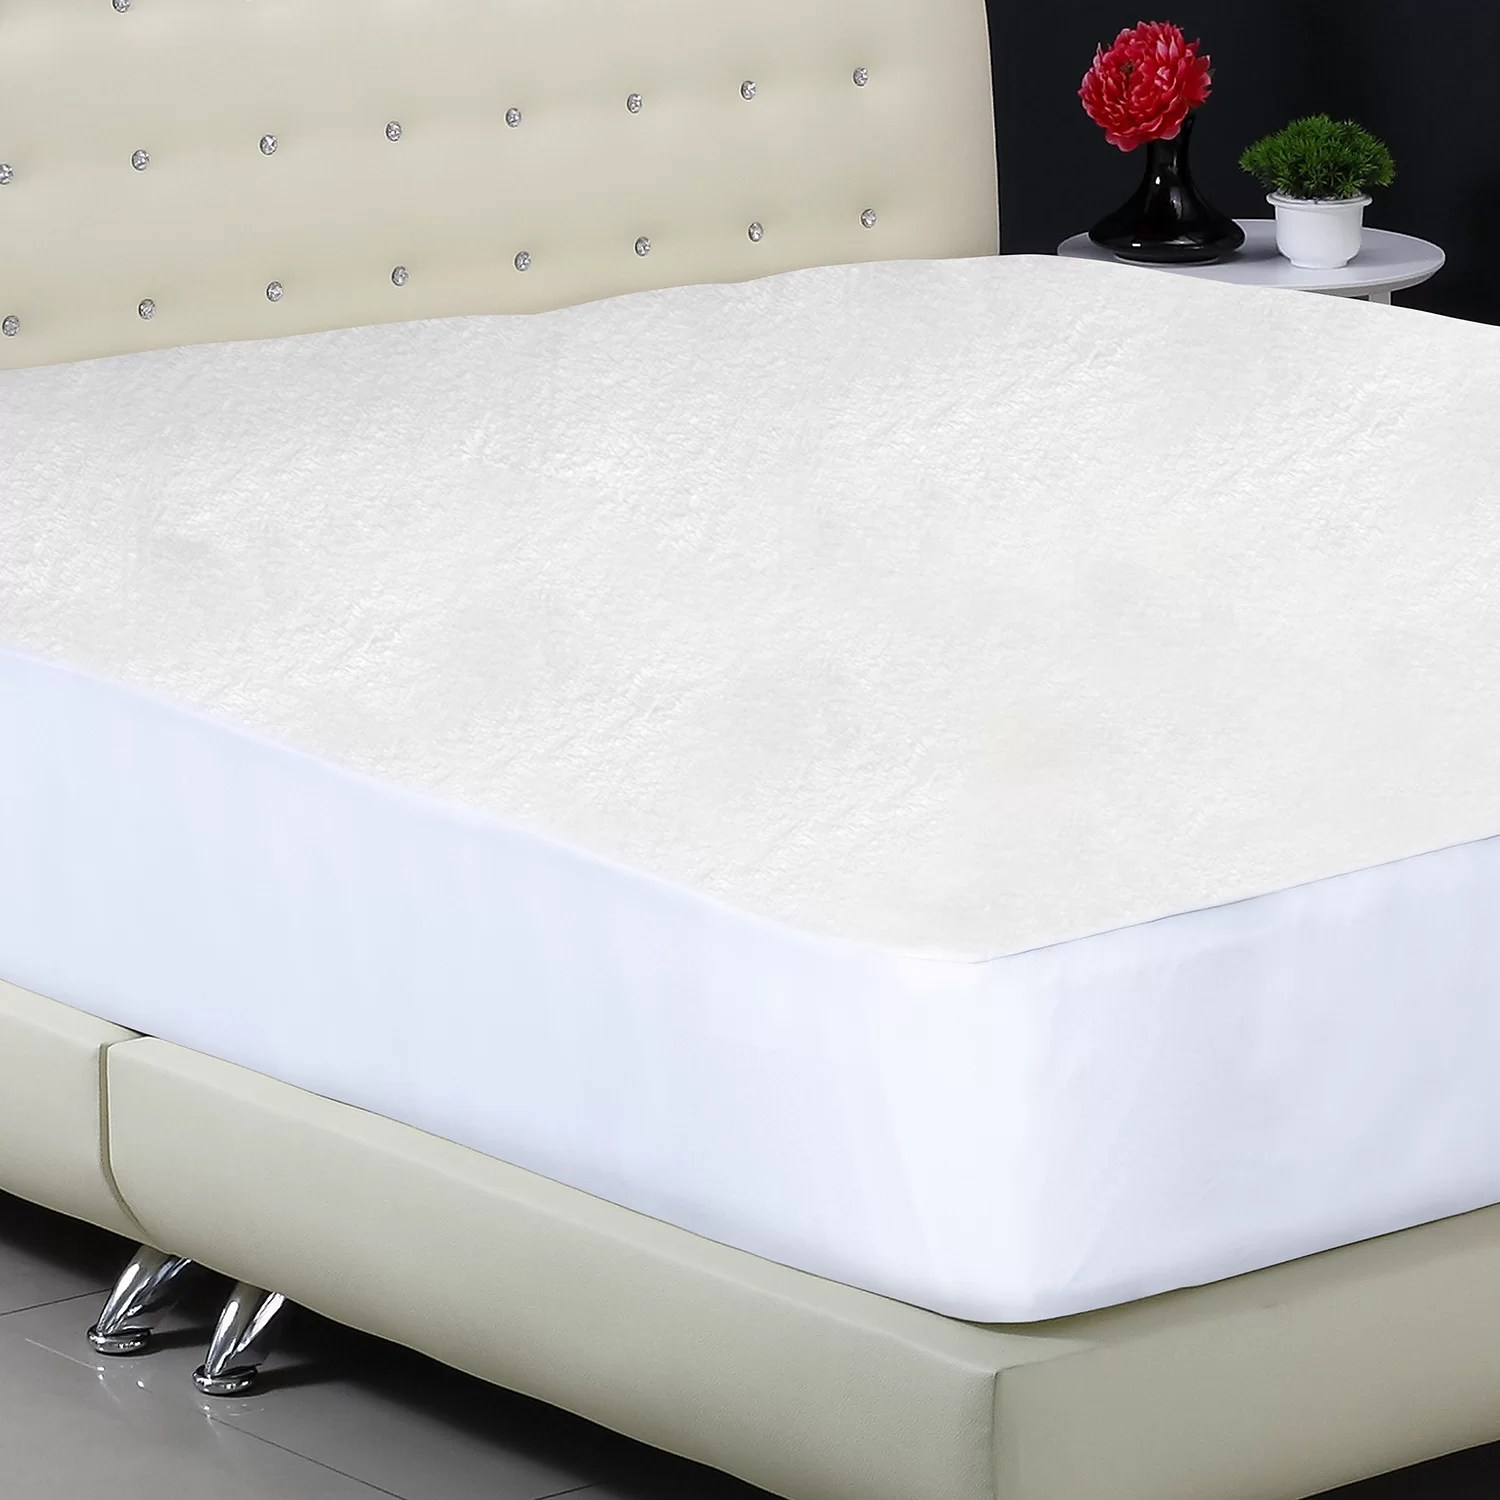 Protect A Bed Premium Fitted Mattress Protector Amp Reviews